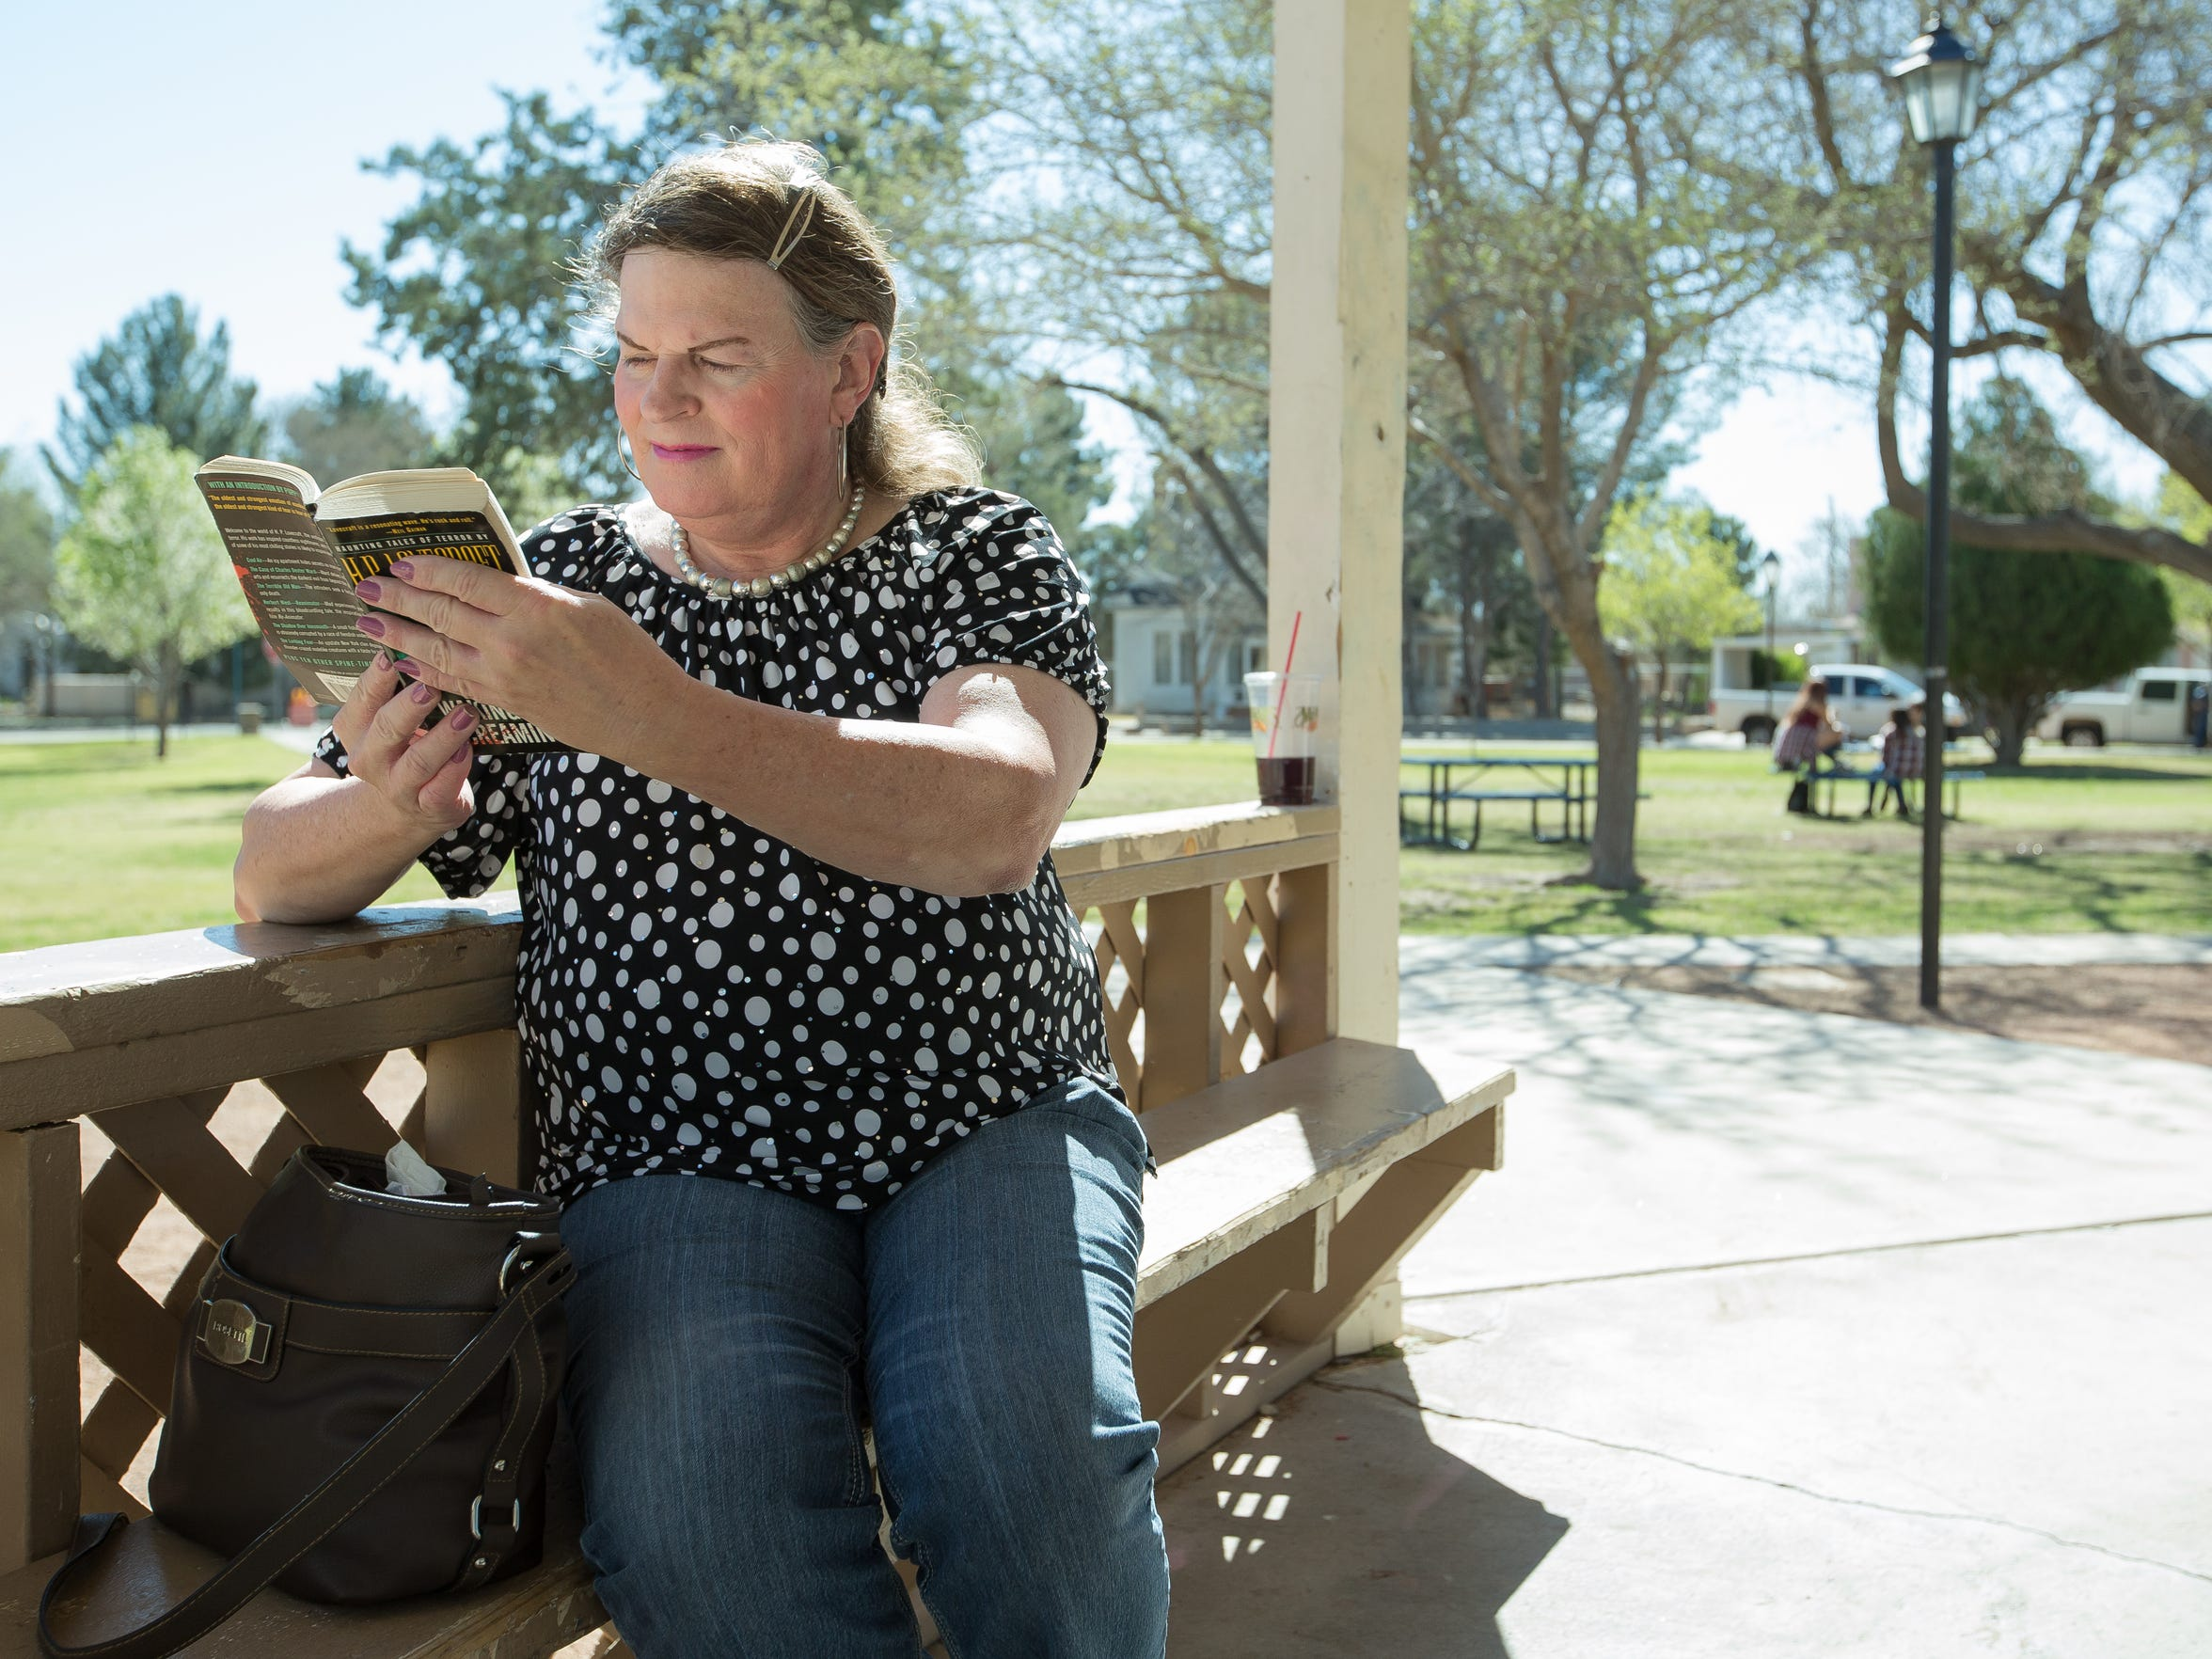 Jodi Wenneborg, 52, a transgender woman, is pictured